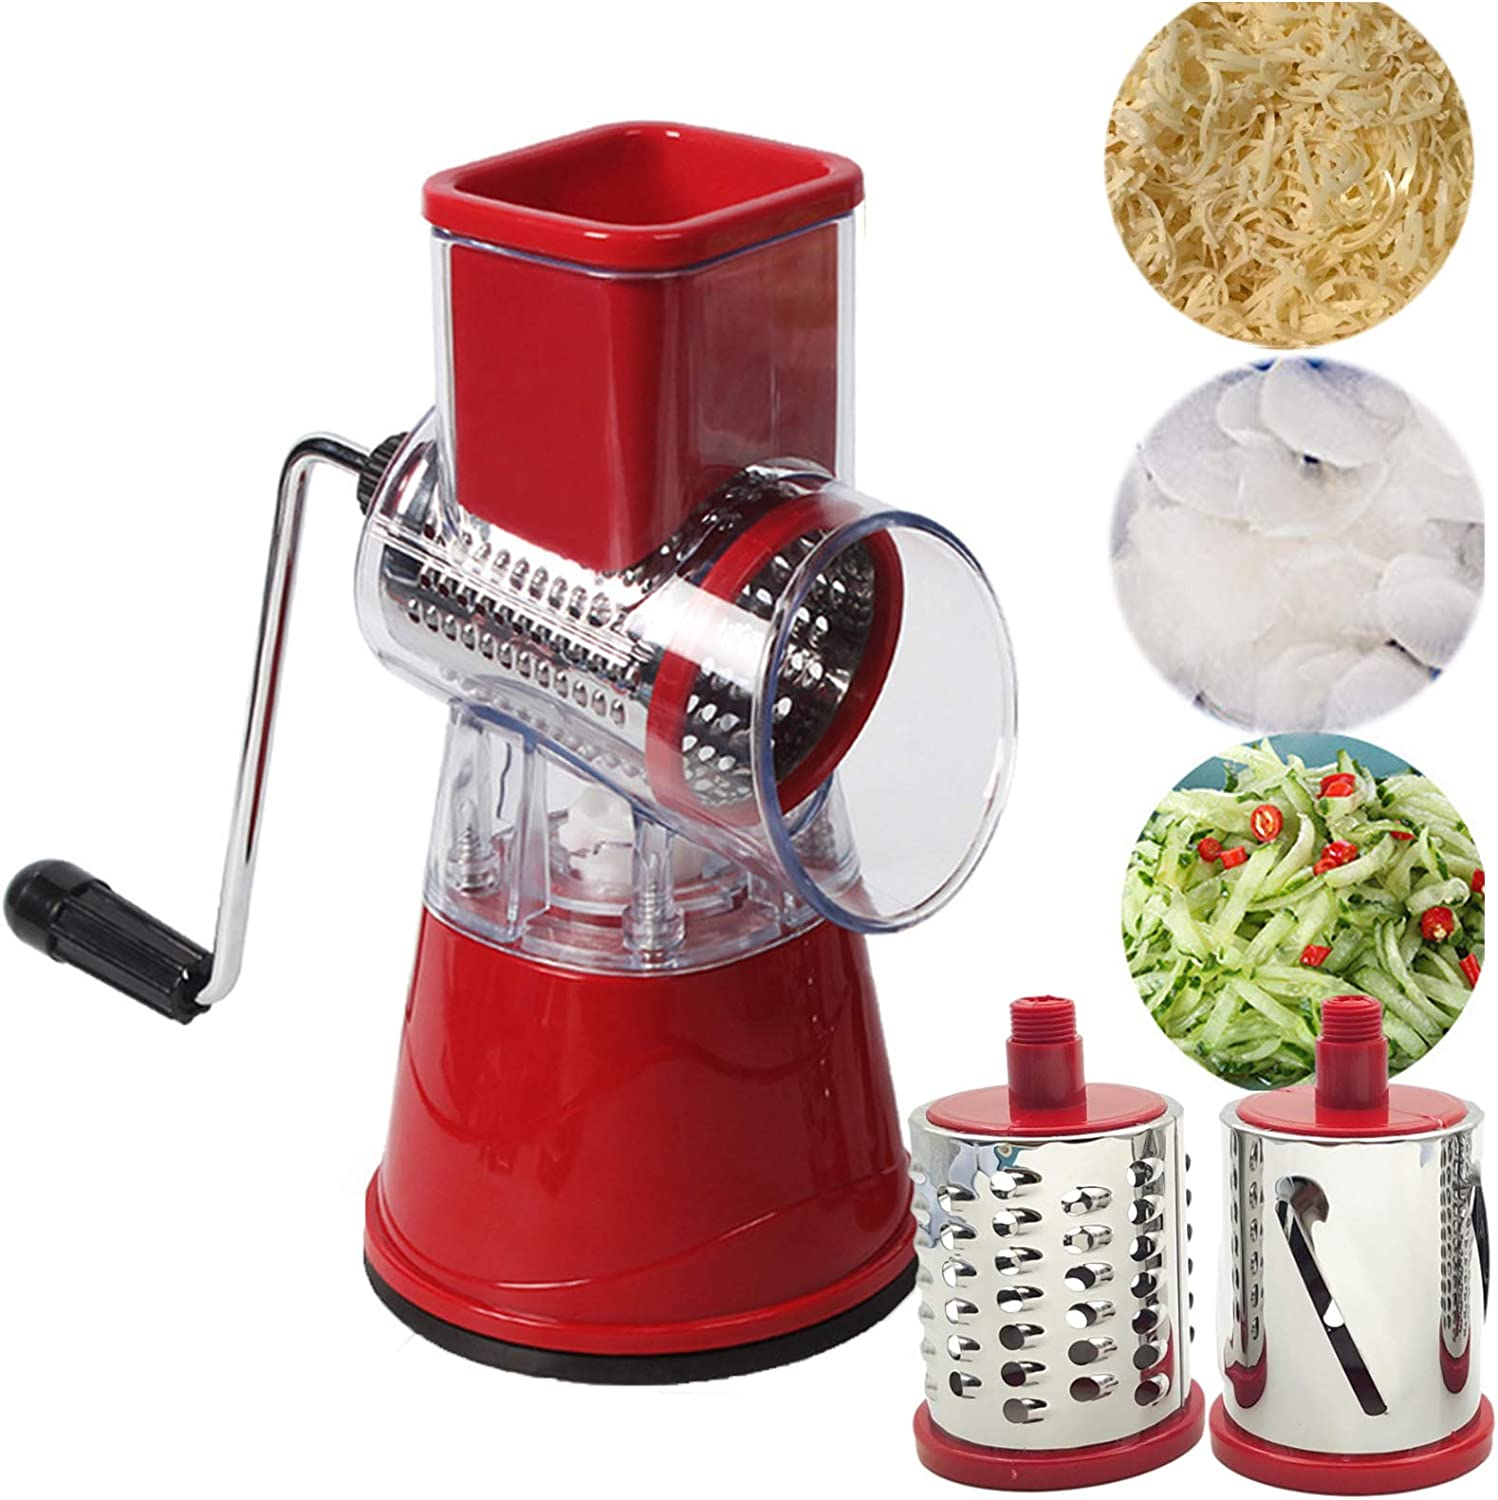 Cheng Round Vegetable Mandoline Slicer with Metal Crank, Manual Rotary Cheese Grater Shredder,Nut Grinder,3 Interchangeable Stainless Steel Blades (red)